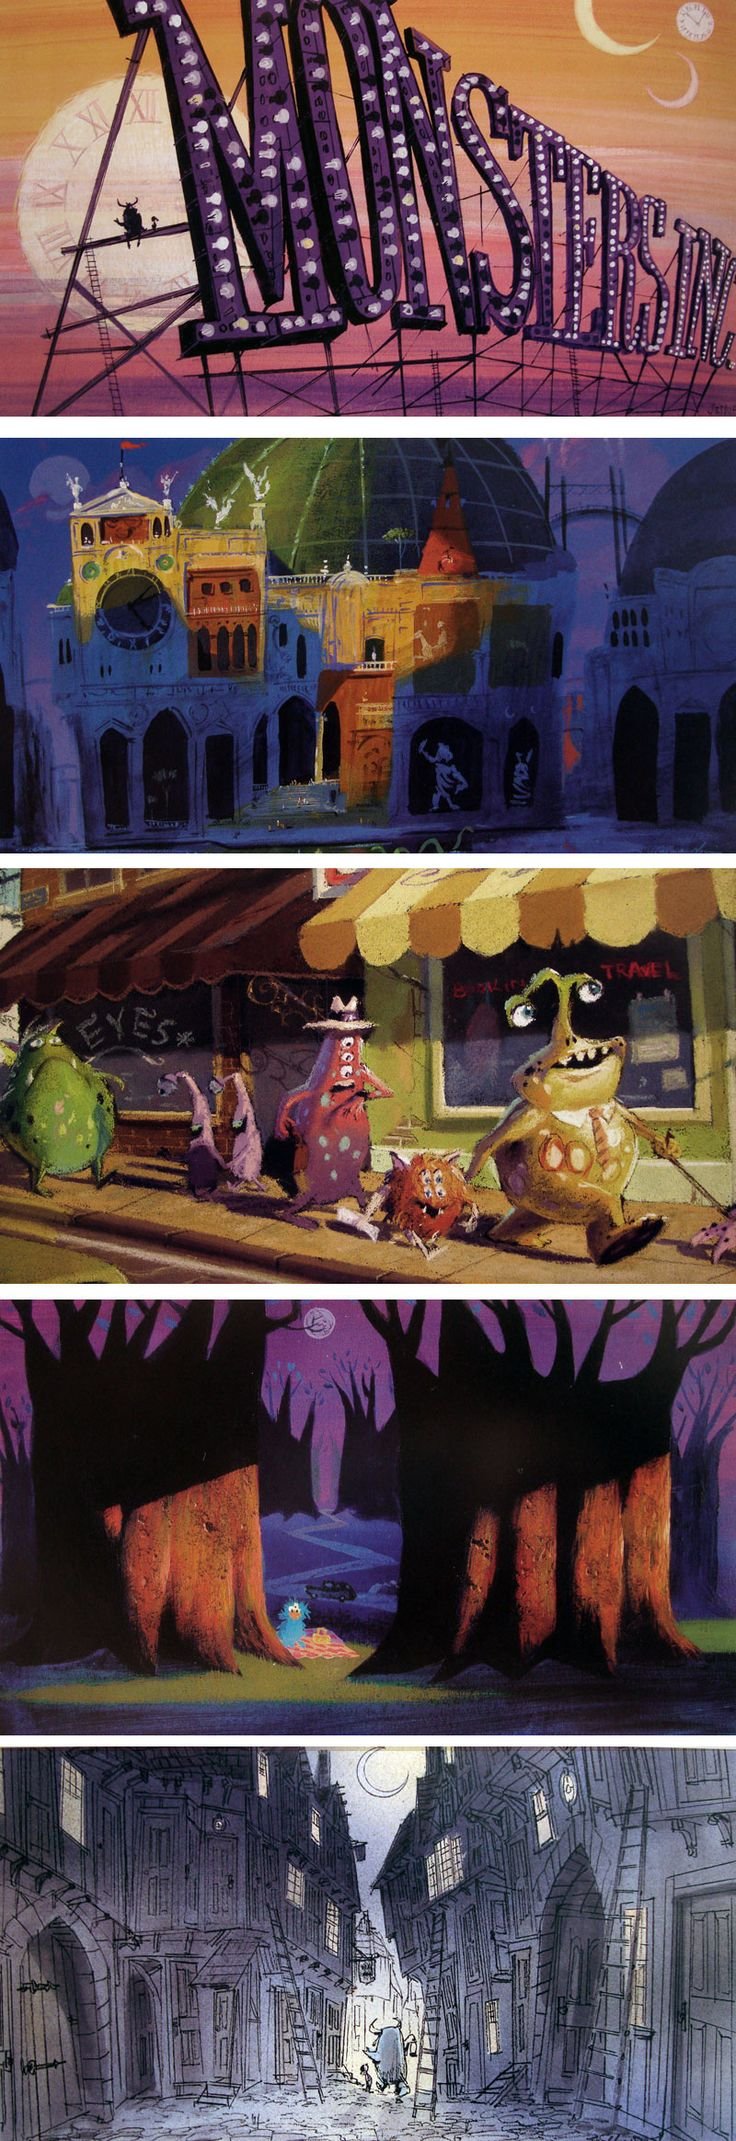 Artes e colorscripts dos 25 anos da Pixar | THECAB - The Concept Art Blog